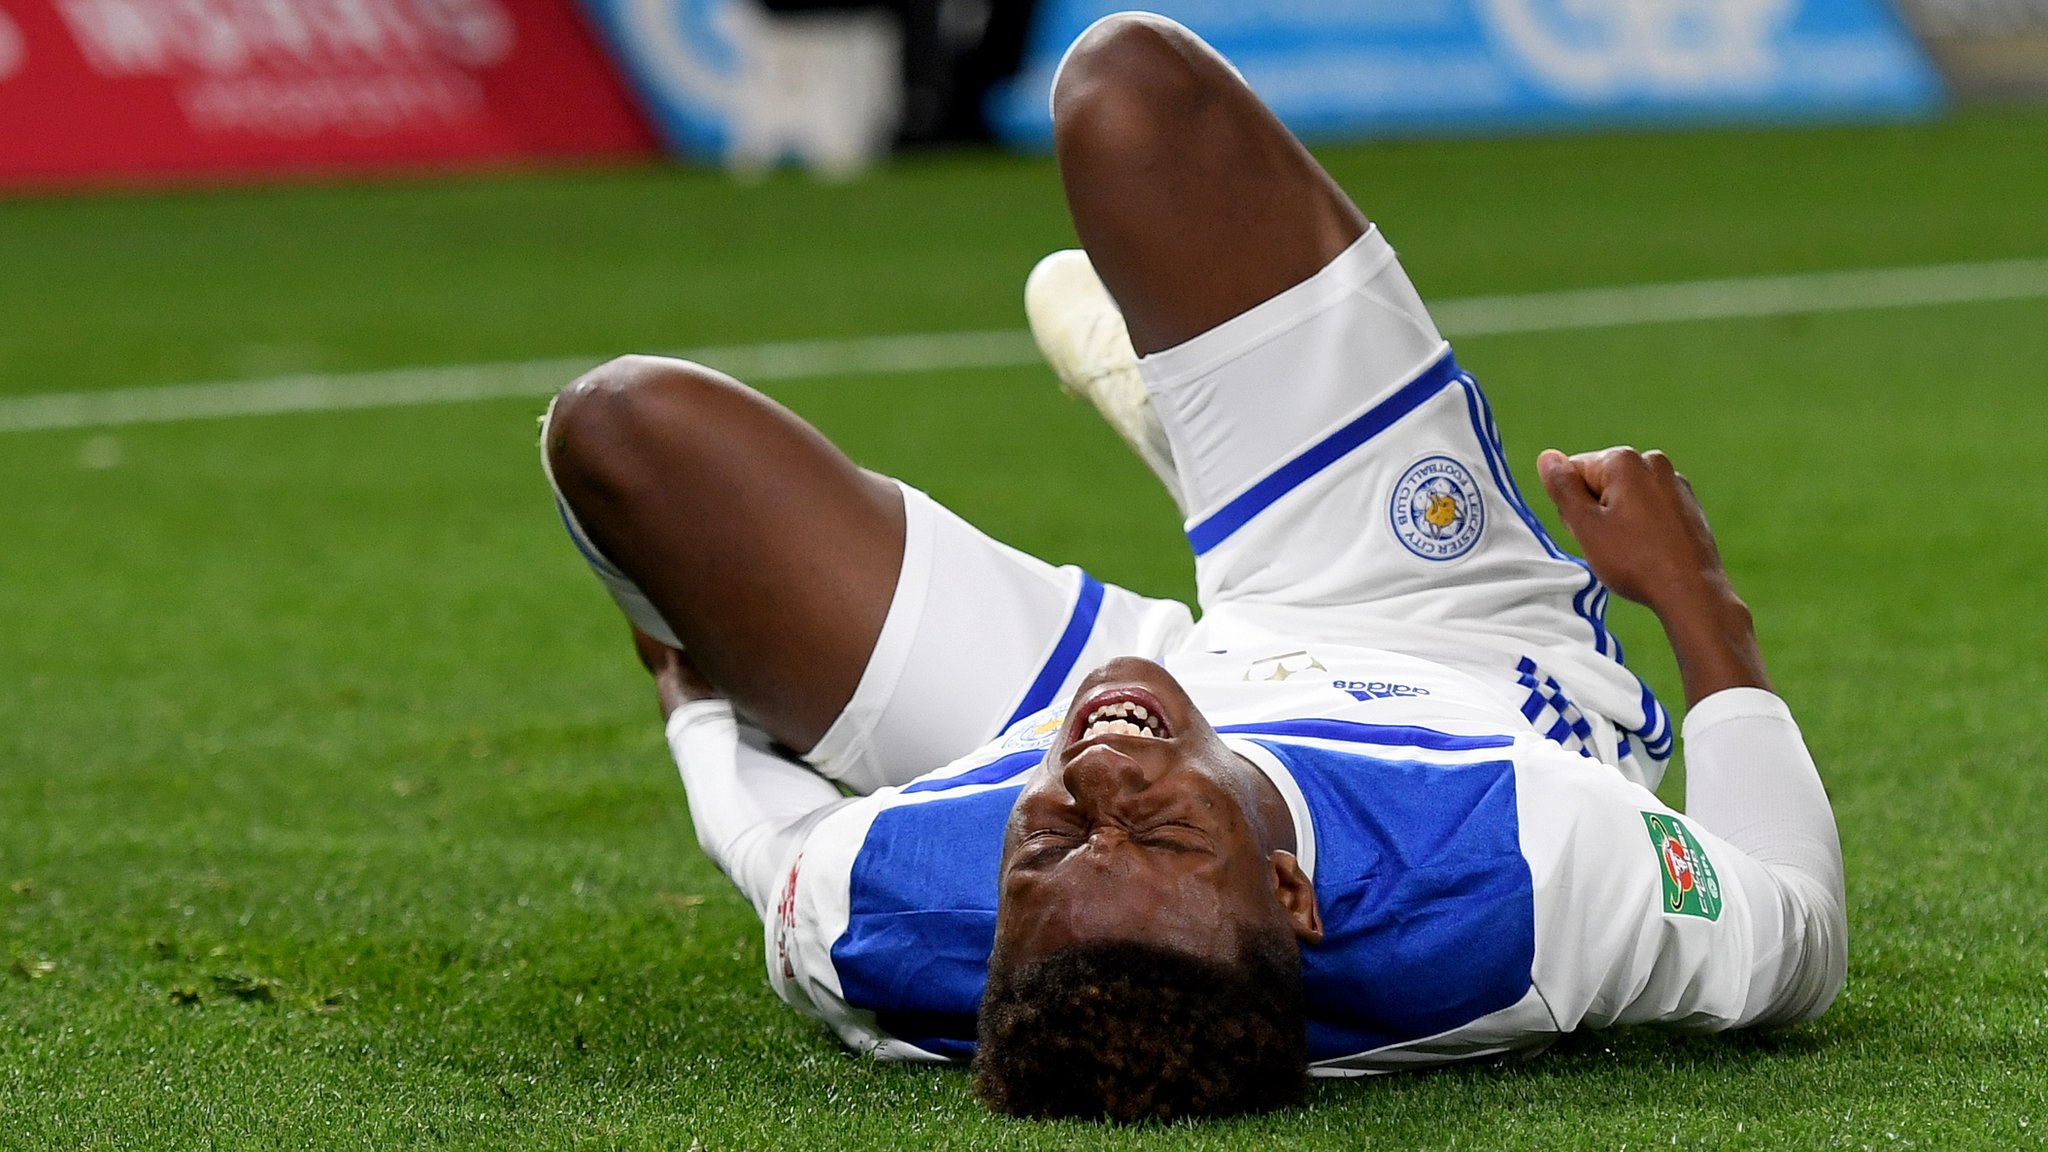 Leicester winger Gray out for up to six weeks